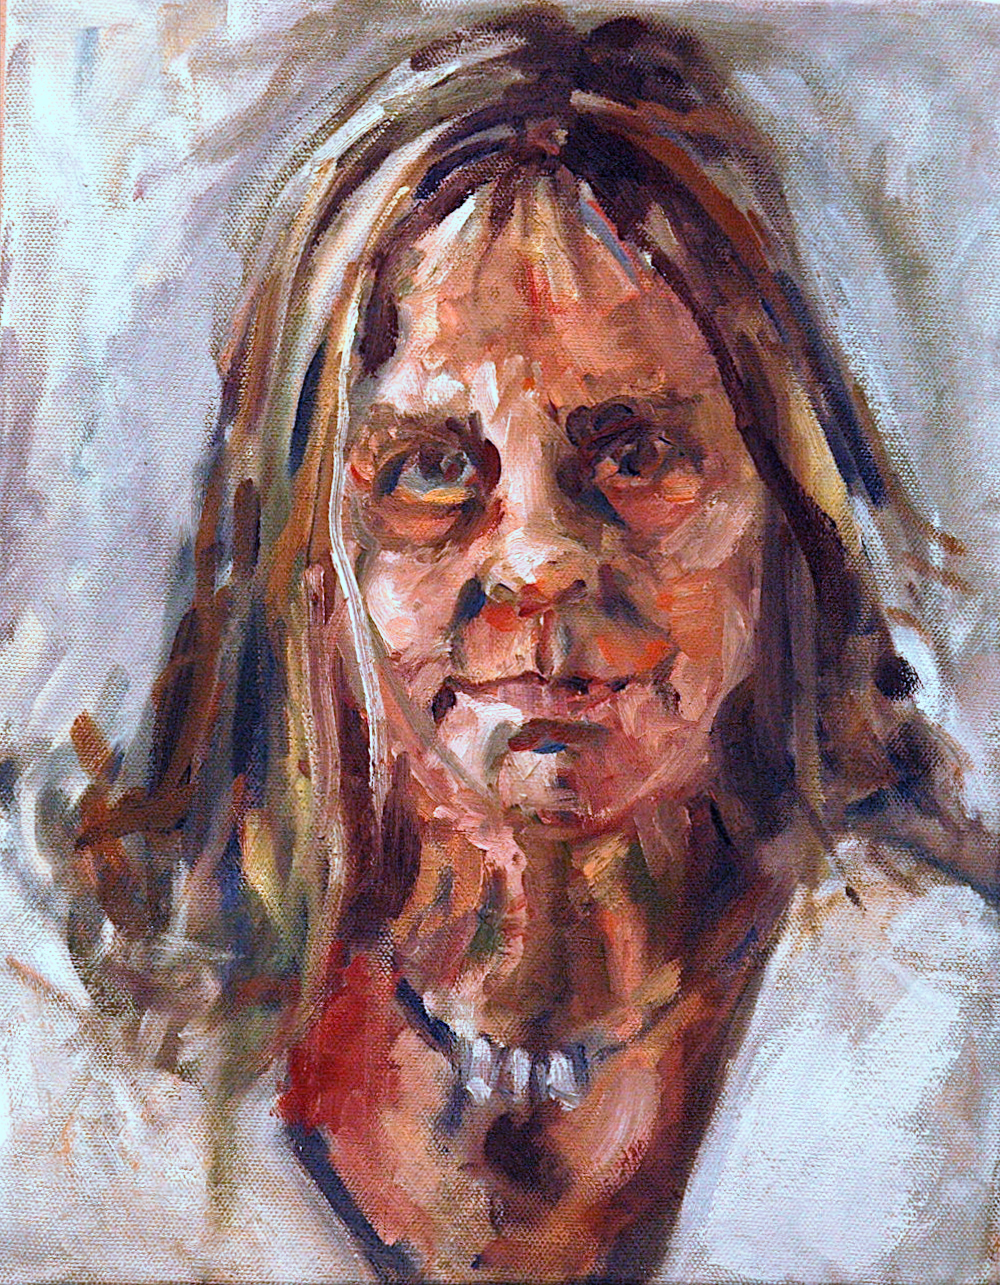 An image of a painting by an older female identifying artist that uses cool whites in the background and foreground, as well as warm European flesh skin colours.